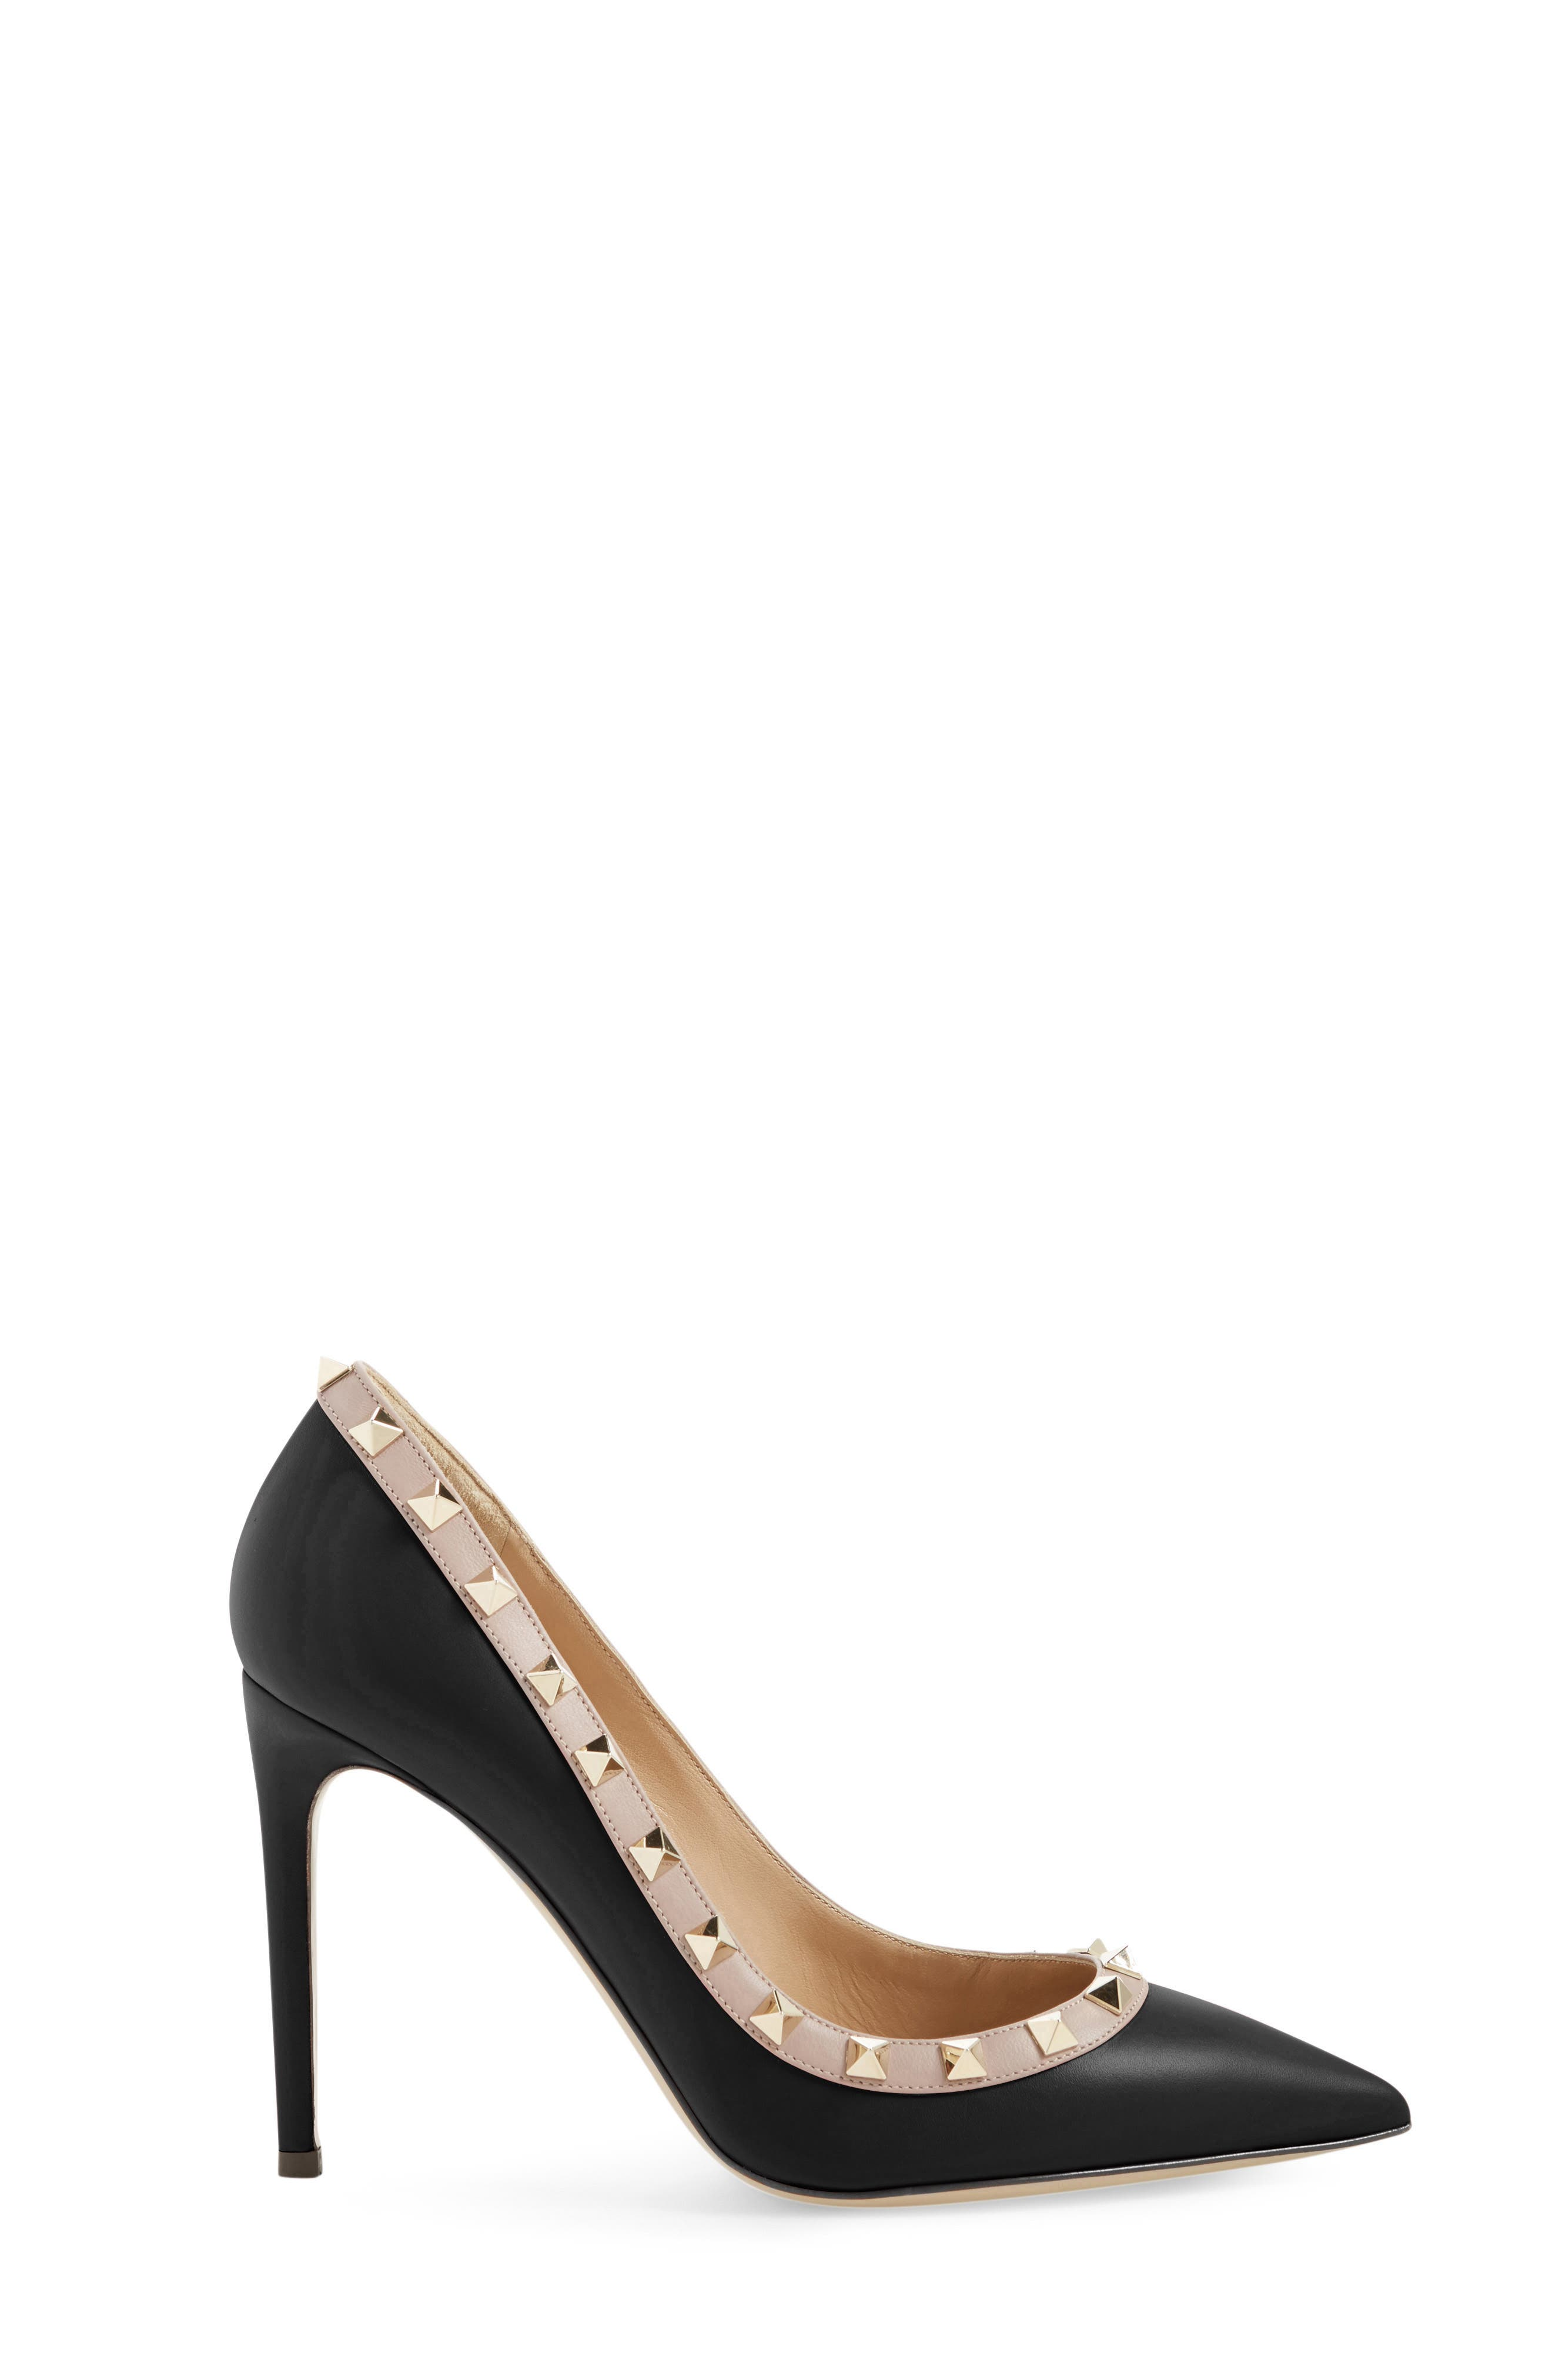 Rockstud Pointed Pump,                             Alternate thumbnail 4, color,                             Black/ Nude Leather